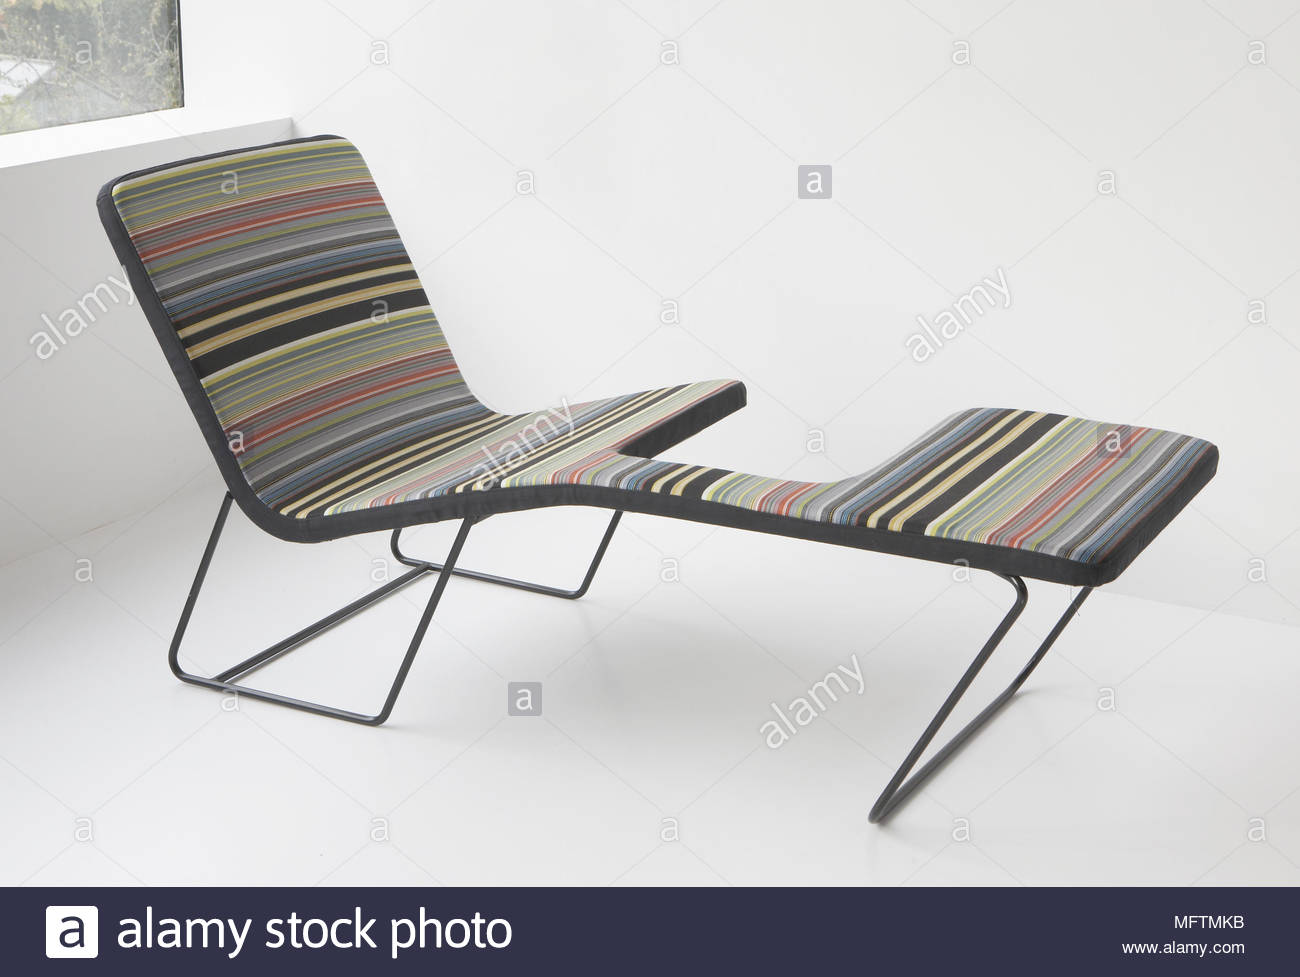 Contemporary Seating Contemporary Seating With Stripe Pattern Upholstery Stock Photo